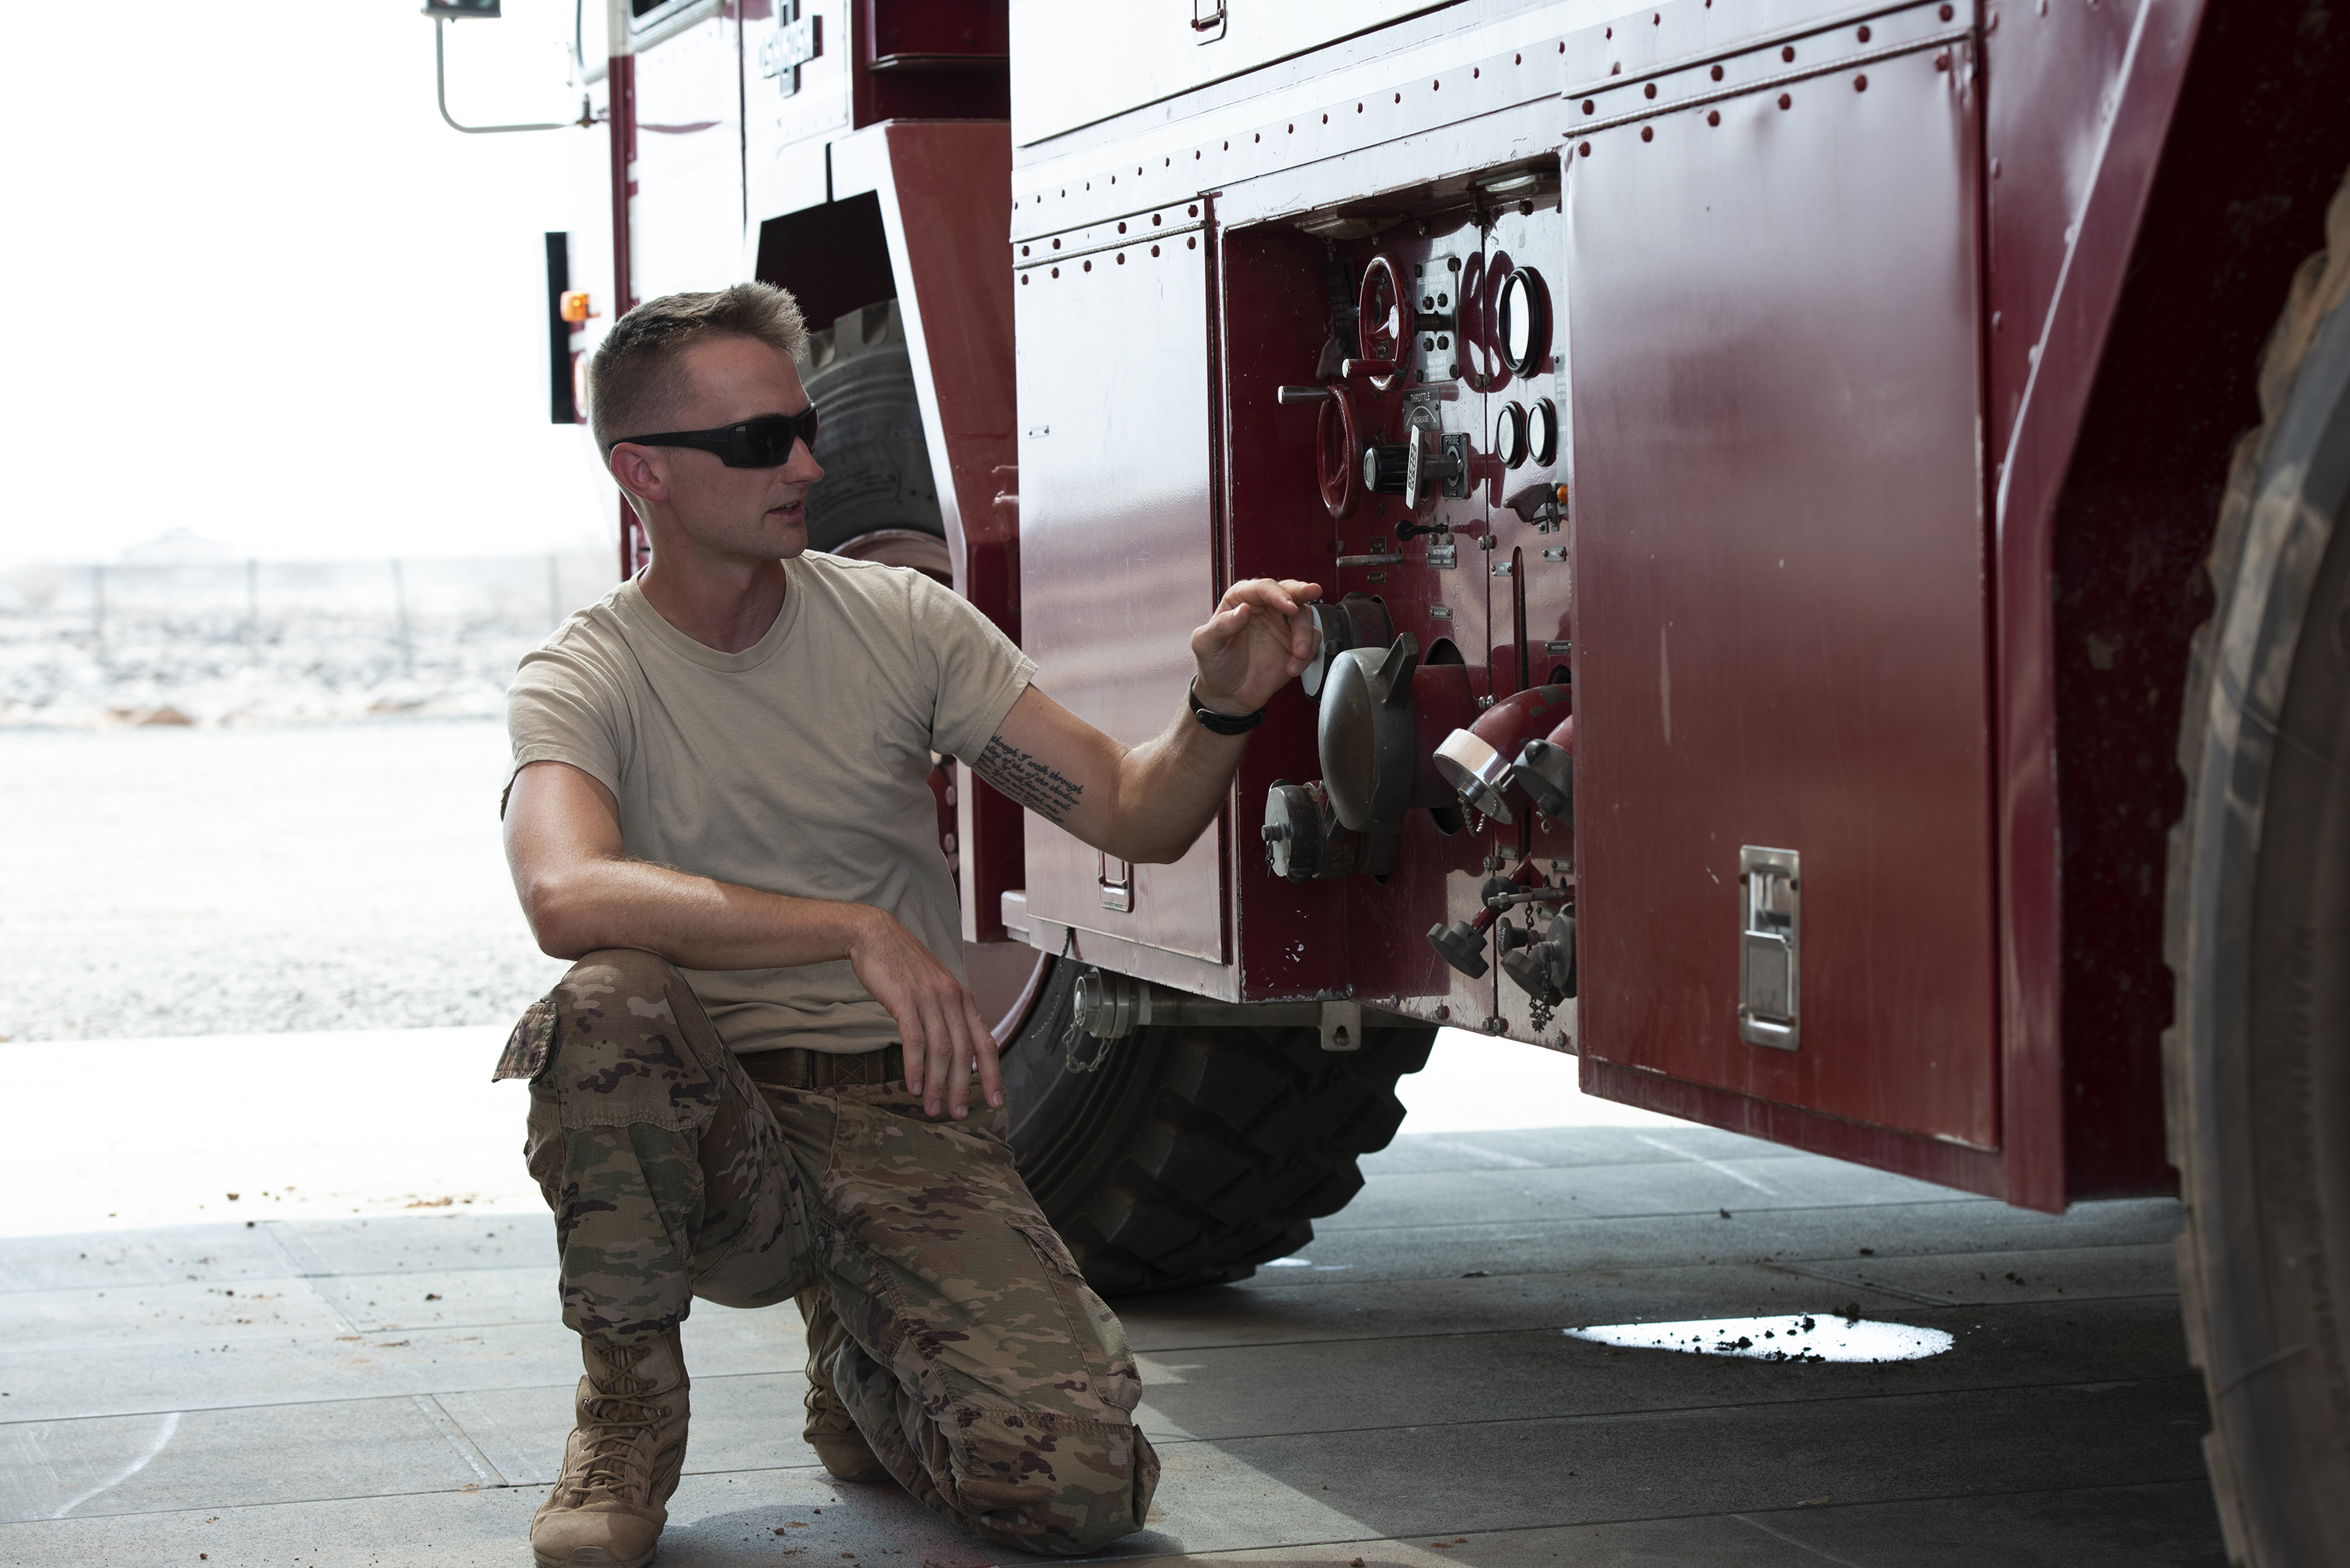 An Airman from the 870th Air Expeditionary Squadron's fire department, 449th Air Expeditionary Group, describes the functions of one of the control panels on a P-19B fire truck, outside Djibouti City, Djibouti, Aug. 20, 2018. The fire fighters continually perform scenario based training in order to maintain their skills. (U.S. Air National Guard photo by Master Sgt. Sarah Mattison)